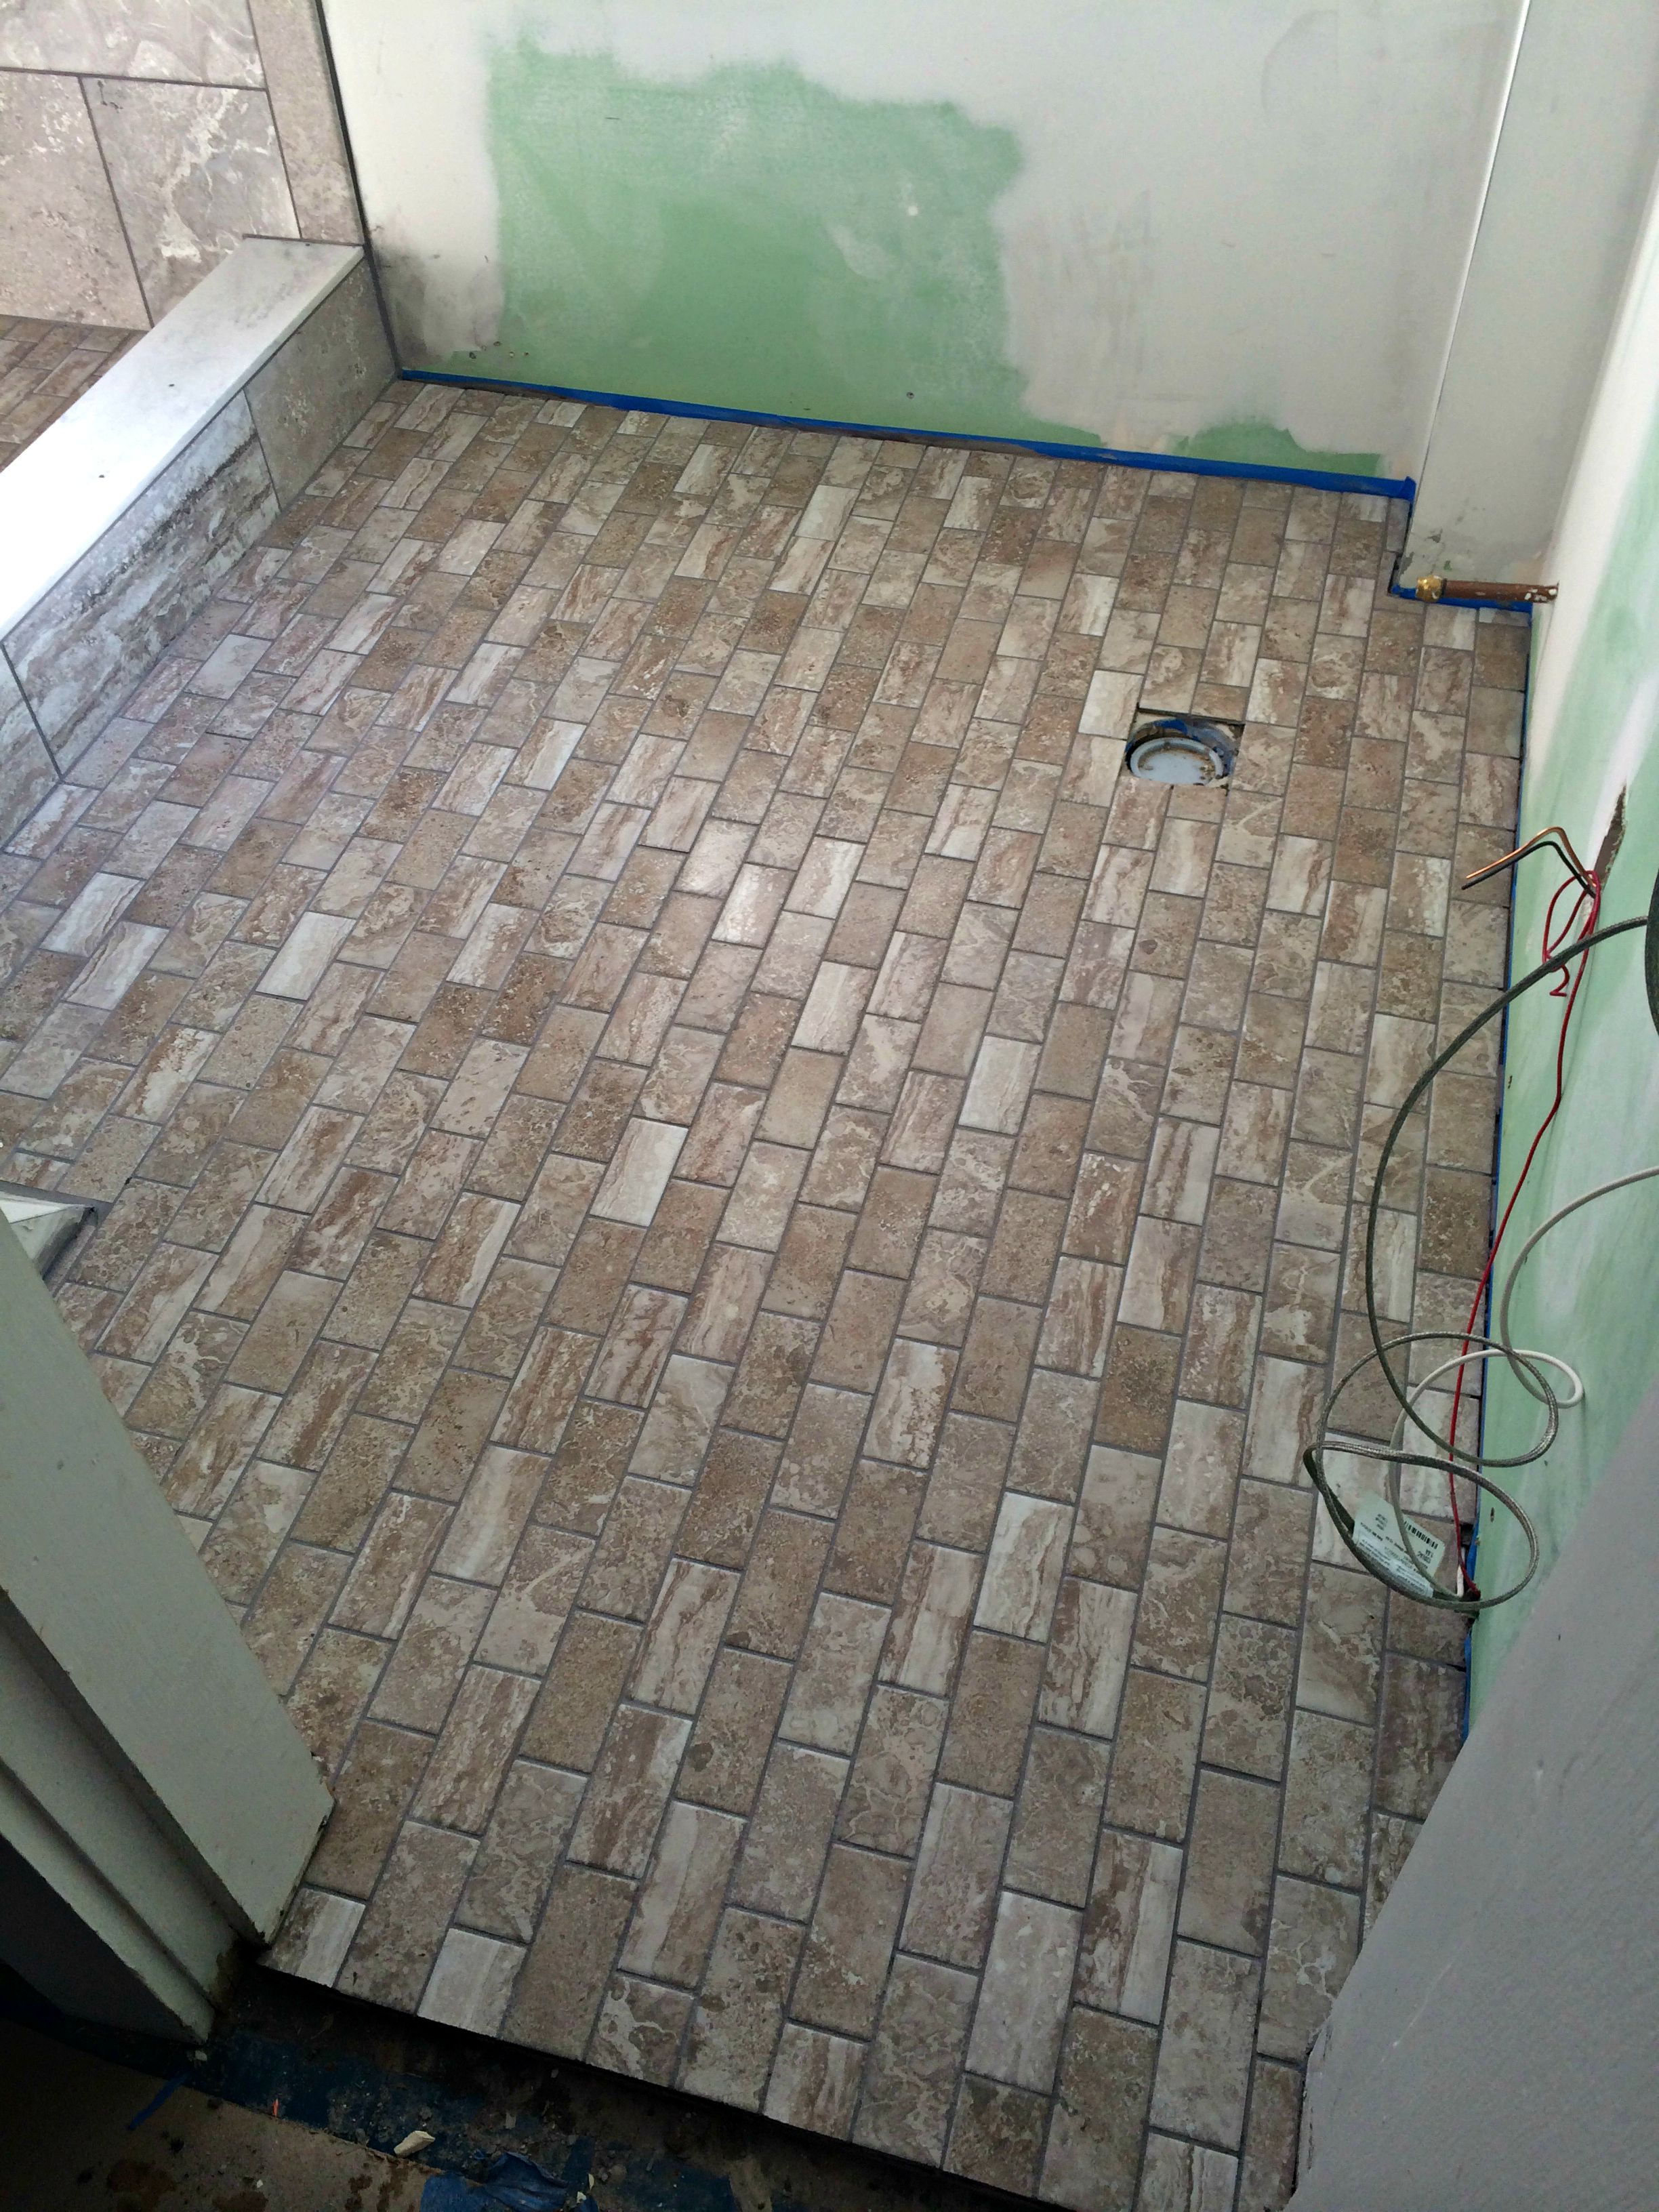 Floor daltile exquisite silver stone in 2x4 installed by for Exquisite stone